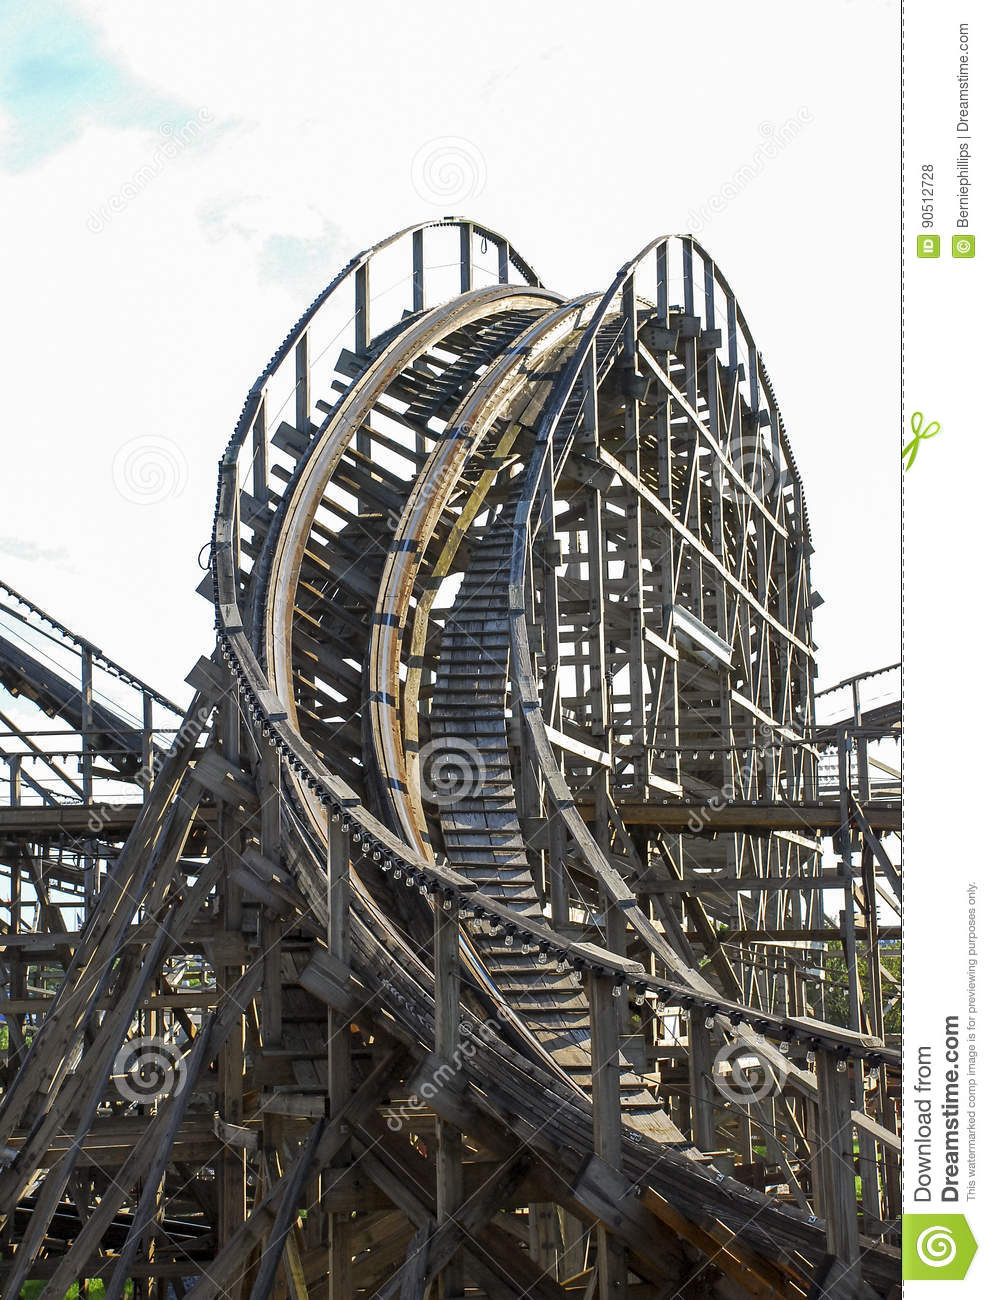 Wooden Roller Coaster Descent Stock Photo - Image of wood ...